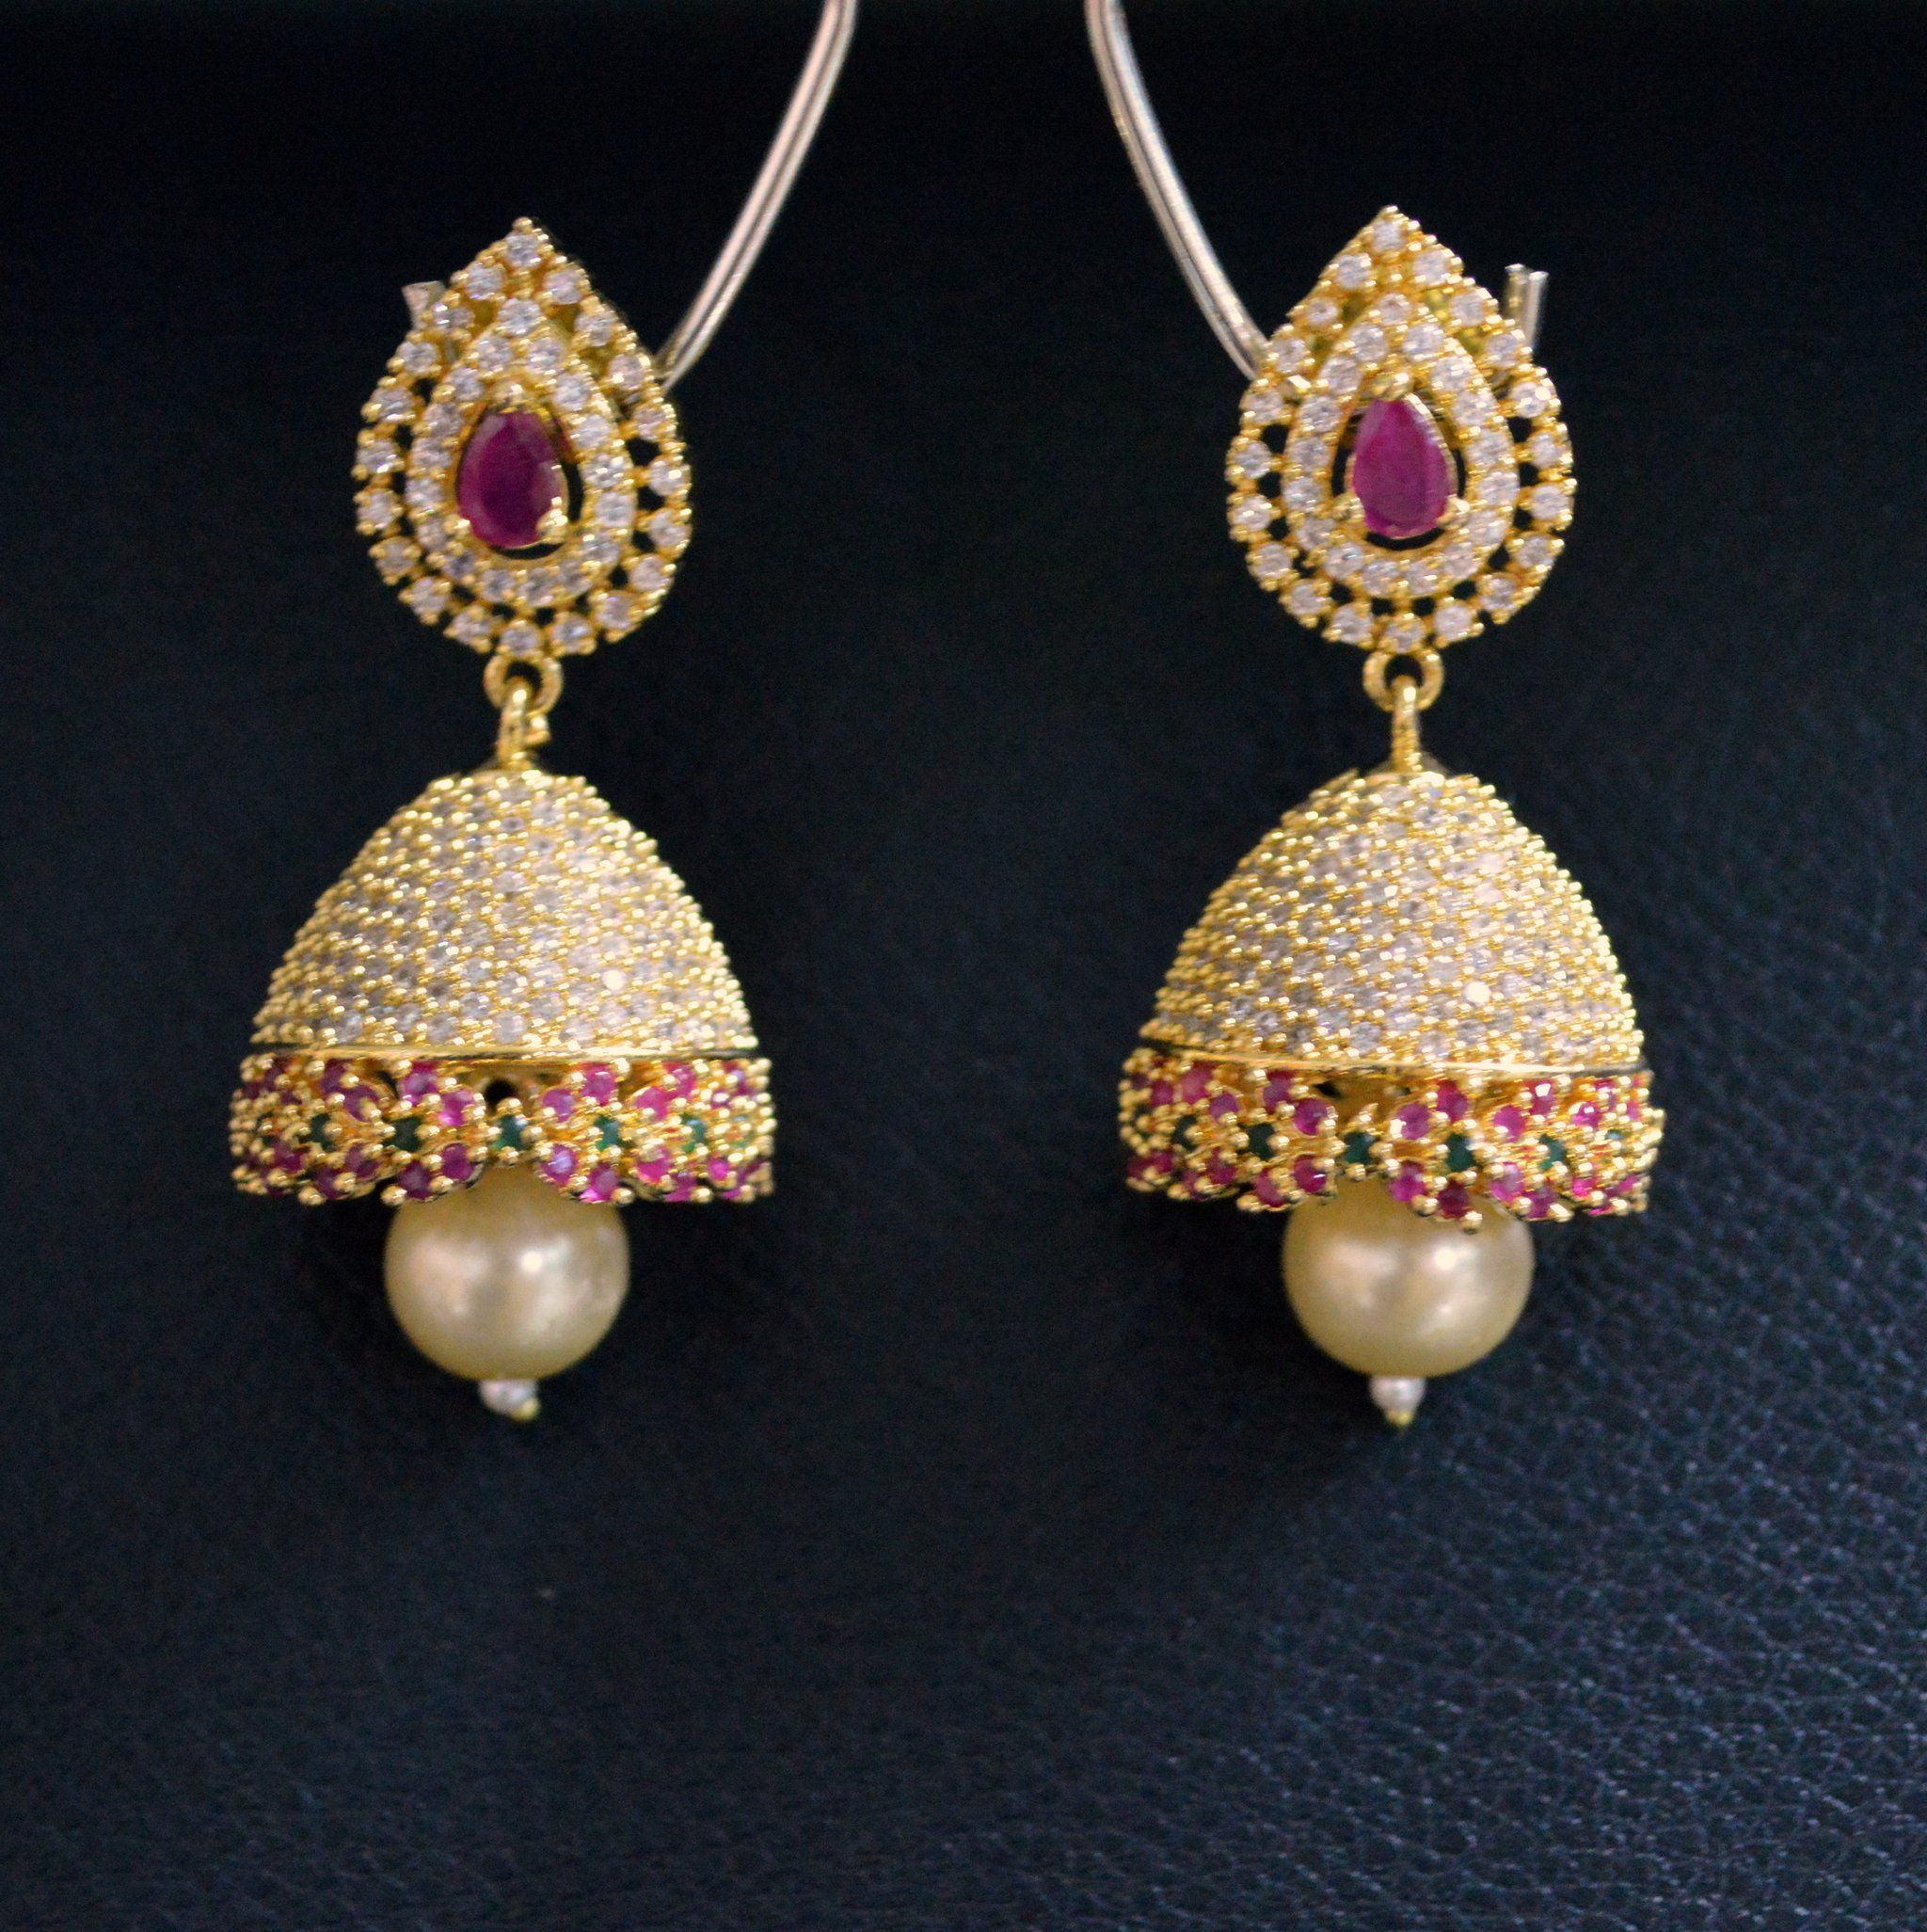 collections connection jewelry your diamond gold earrings diya to fashion ear american tone welcome bollywood online cuff